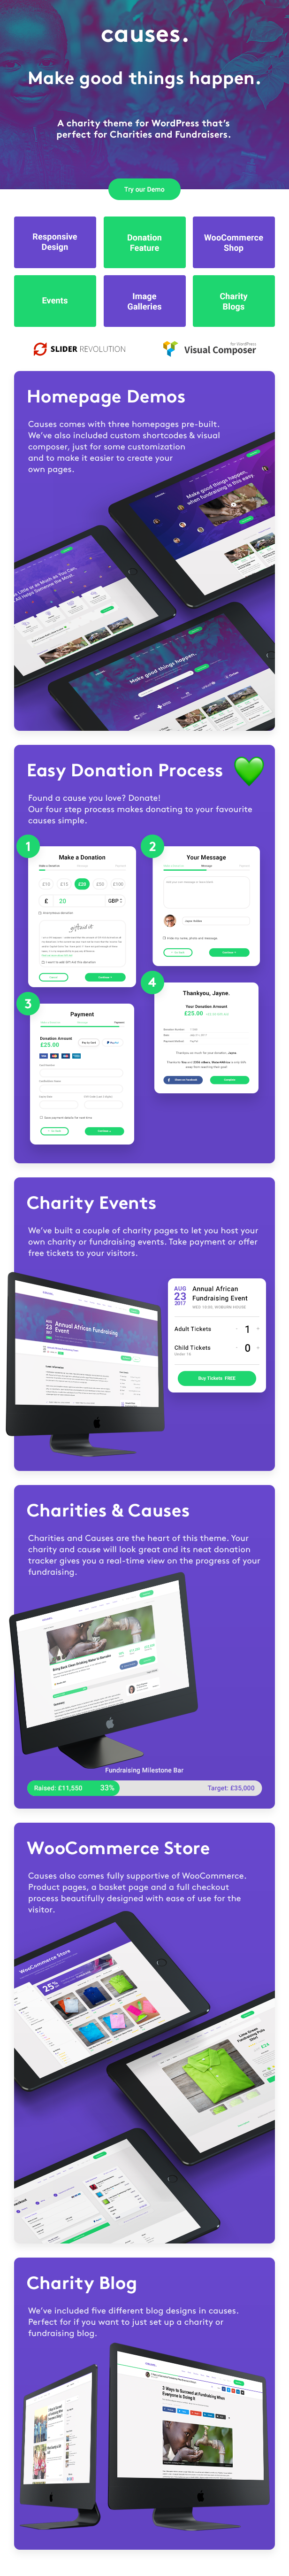 JustGive - Charity & Fundraising WordPress Theme